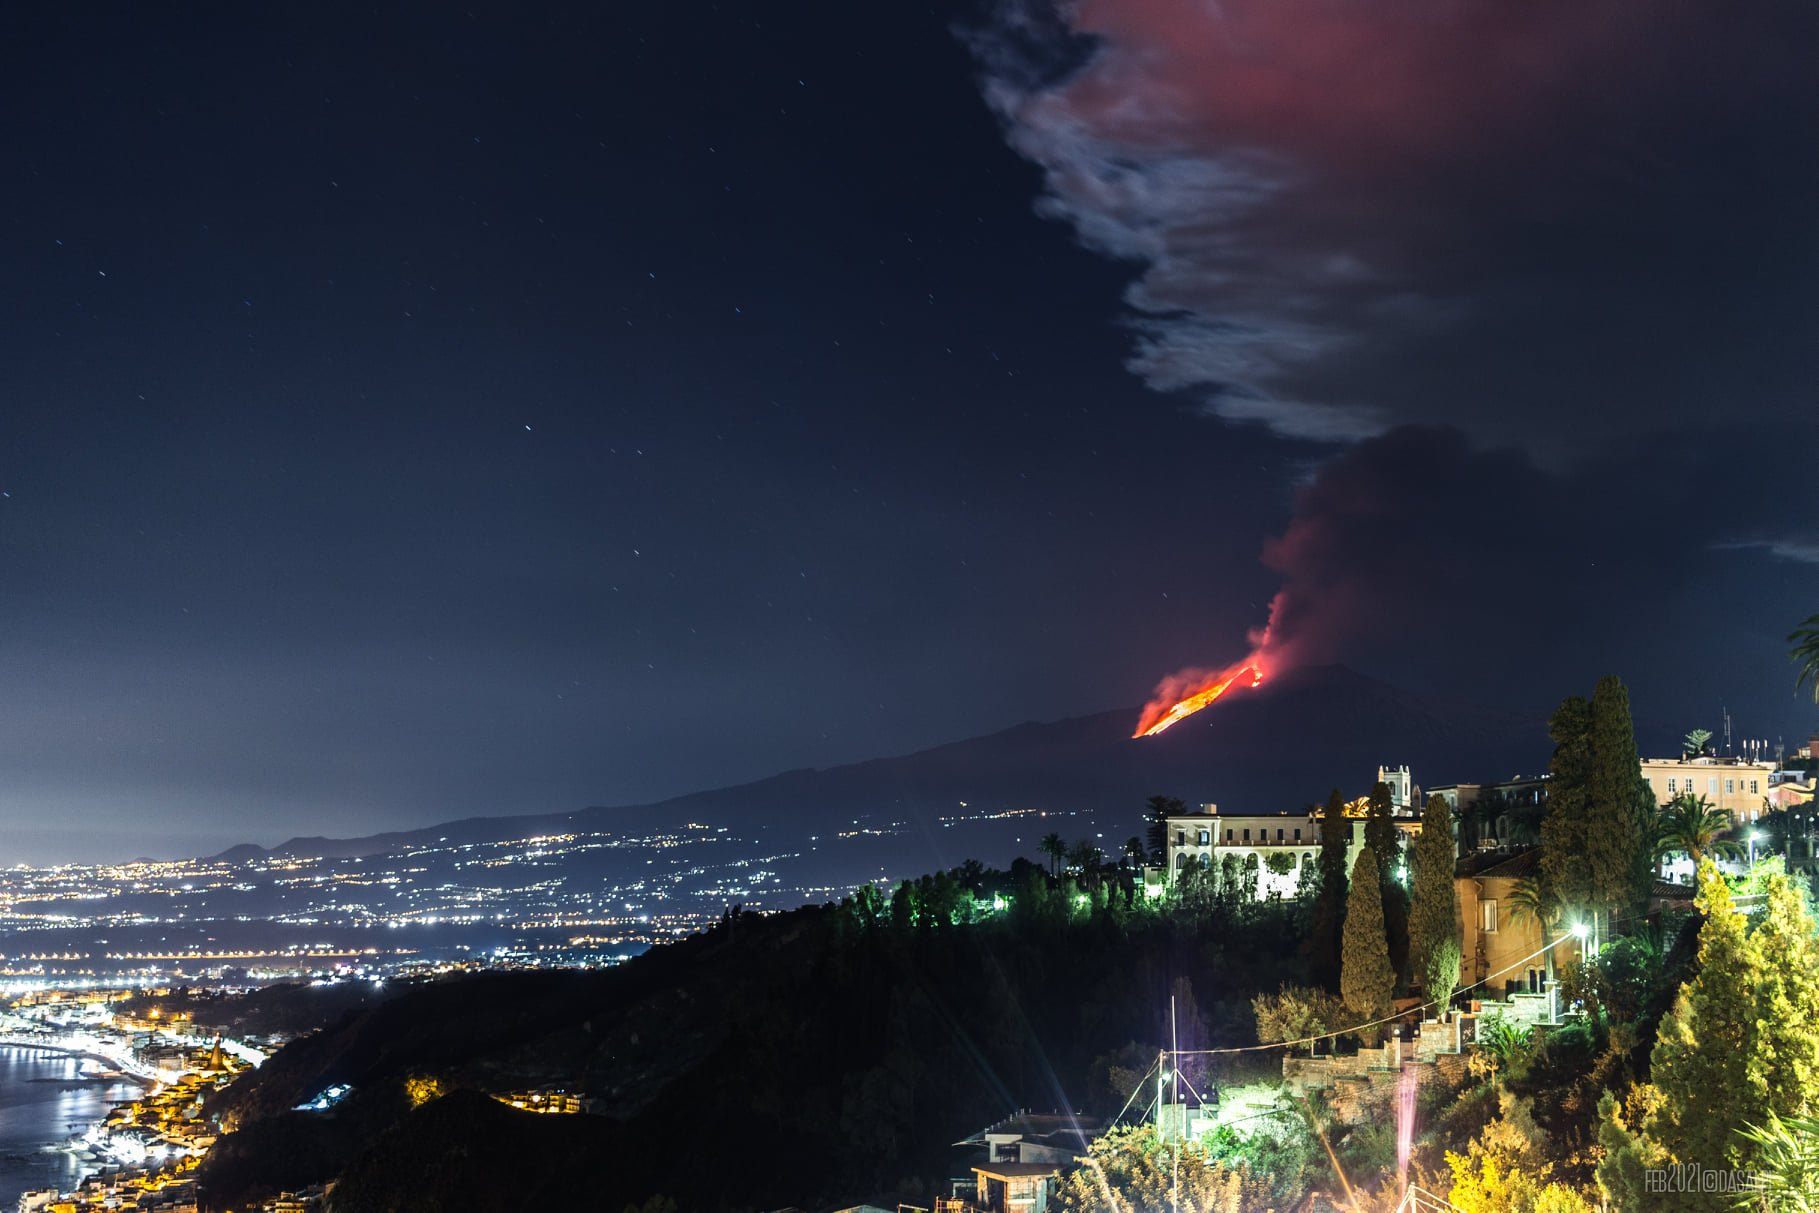 5th eruption, 23th feb 2021. View from Taormina, Dasalpi Travel